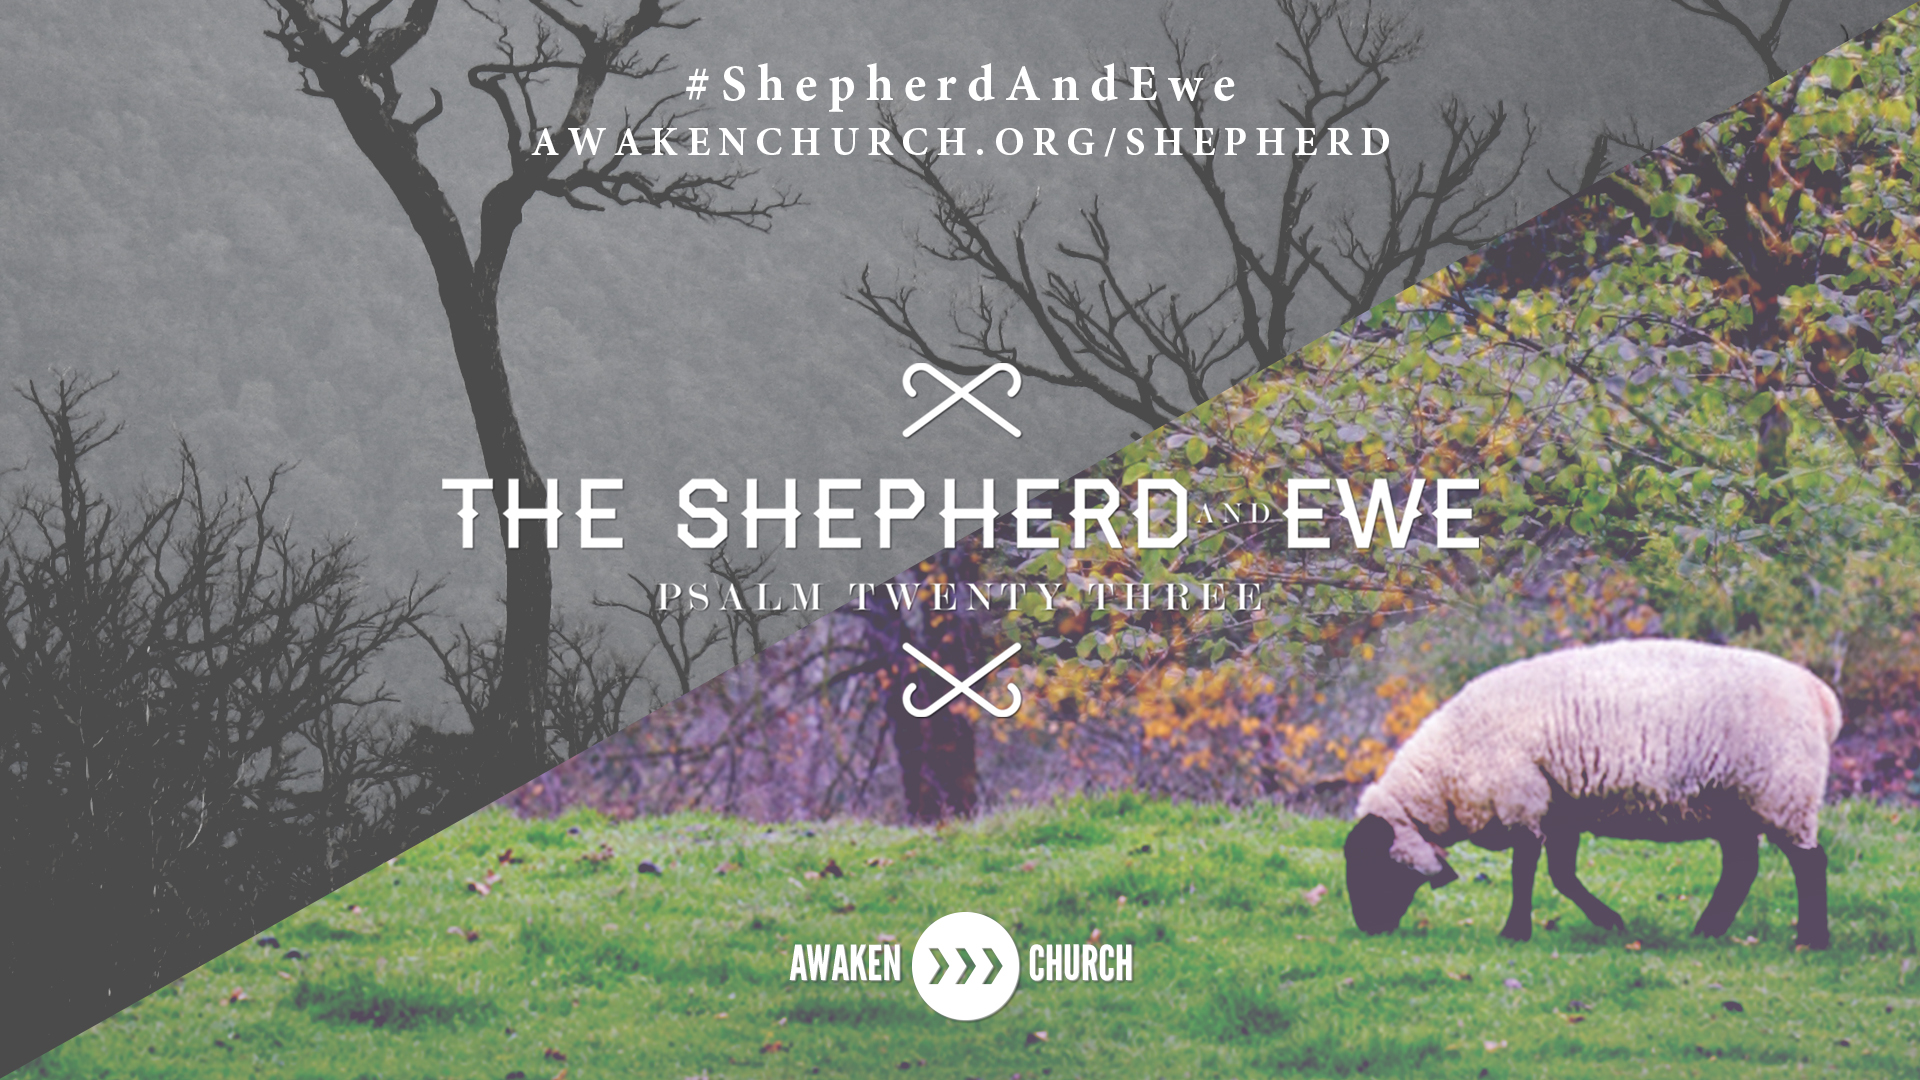 The Shepherd and Ewe